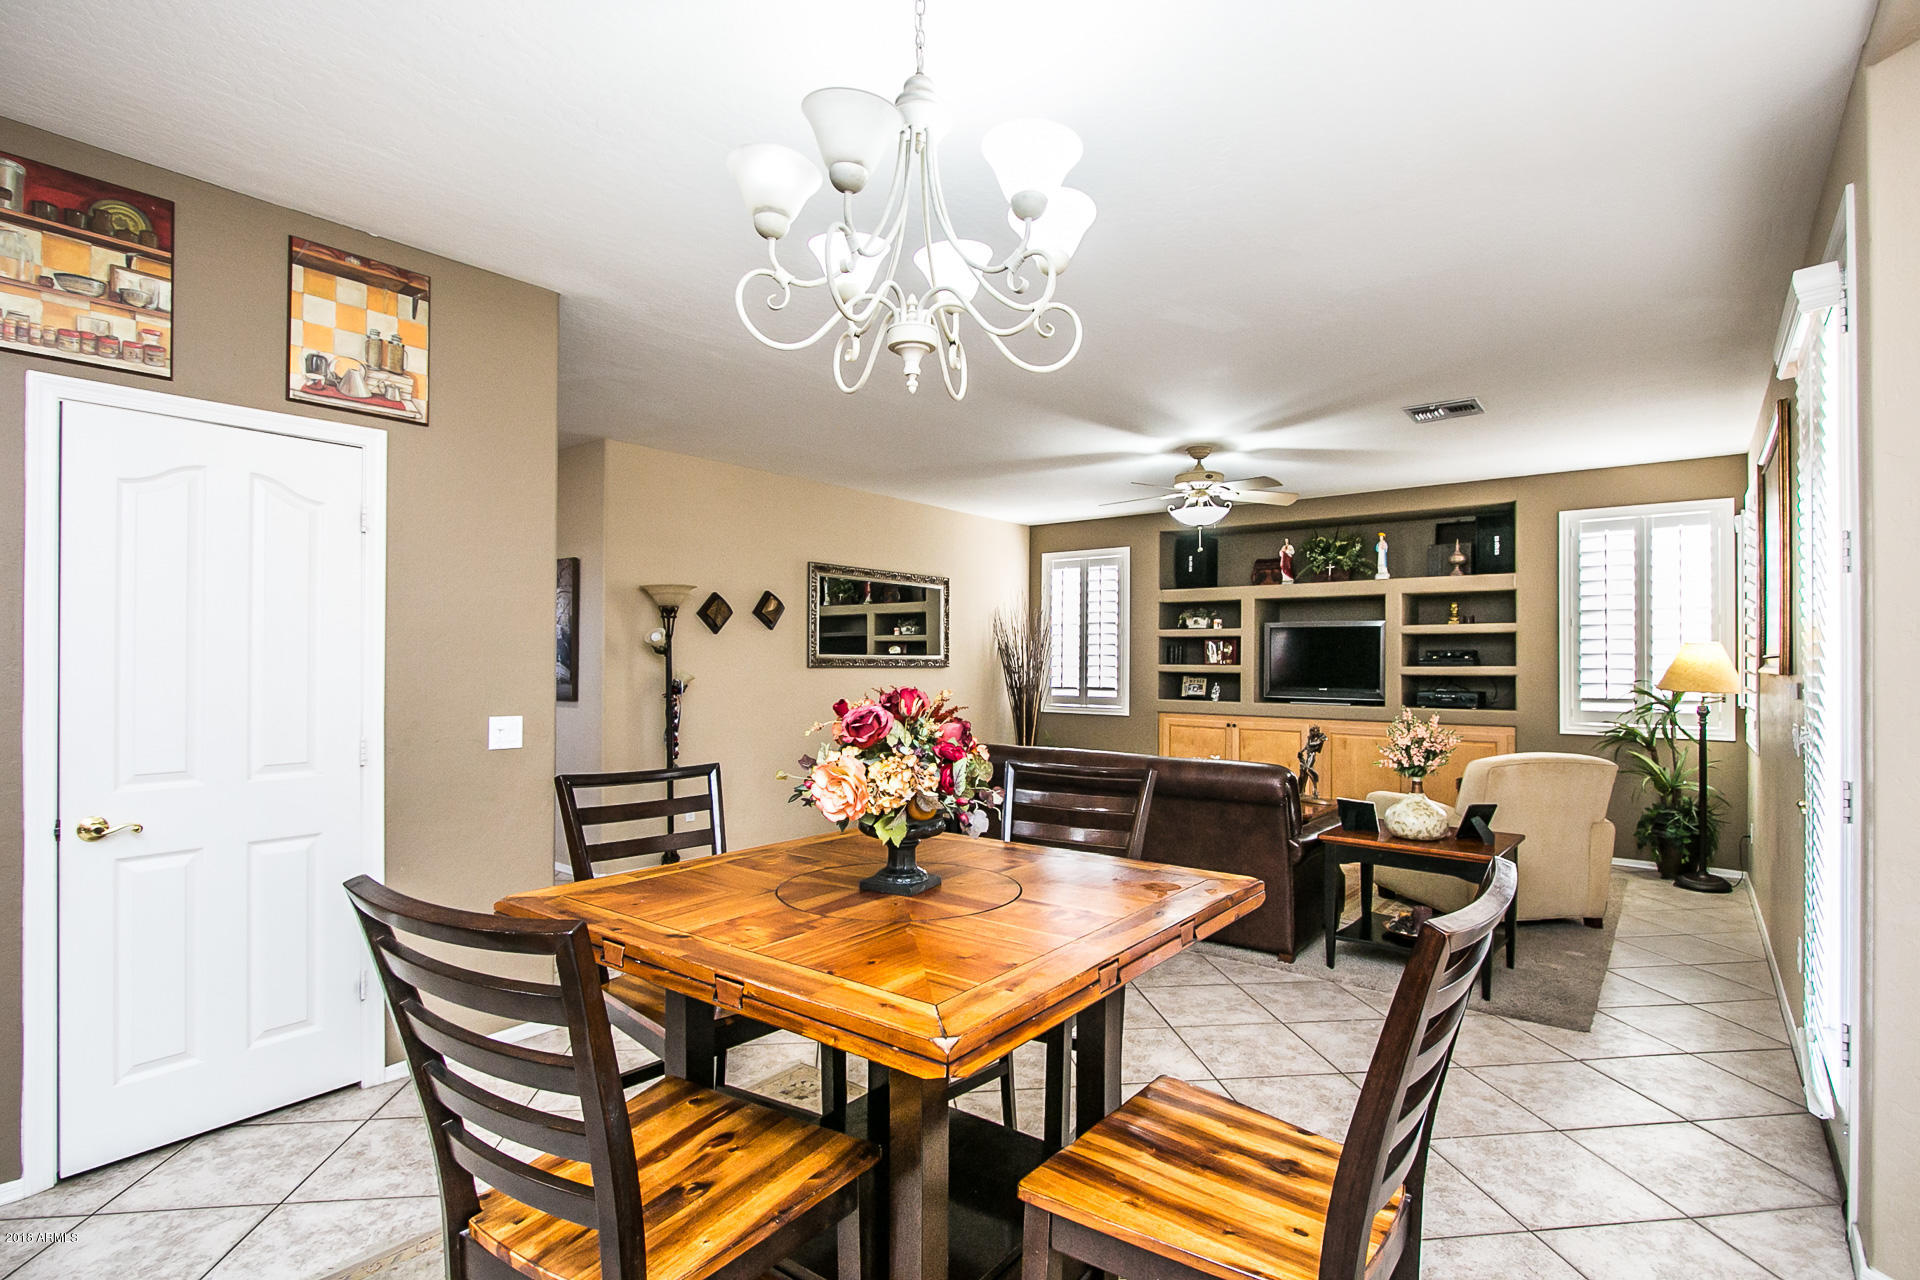 This Is A Spectacular, Immaculate Home In The Heart Of Thriving Gilbert.  Incredibly Spacious With Over 3,500 Square Feet Of Fine Appointments.